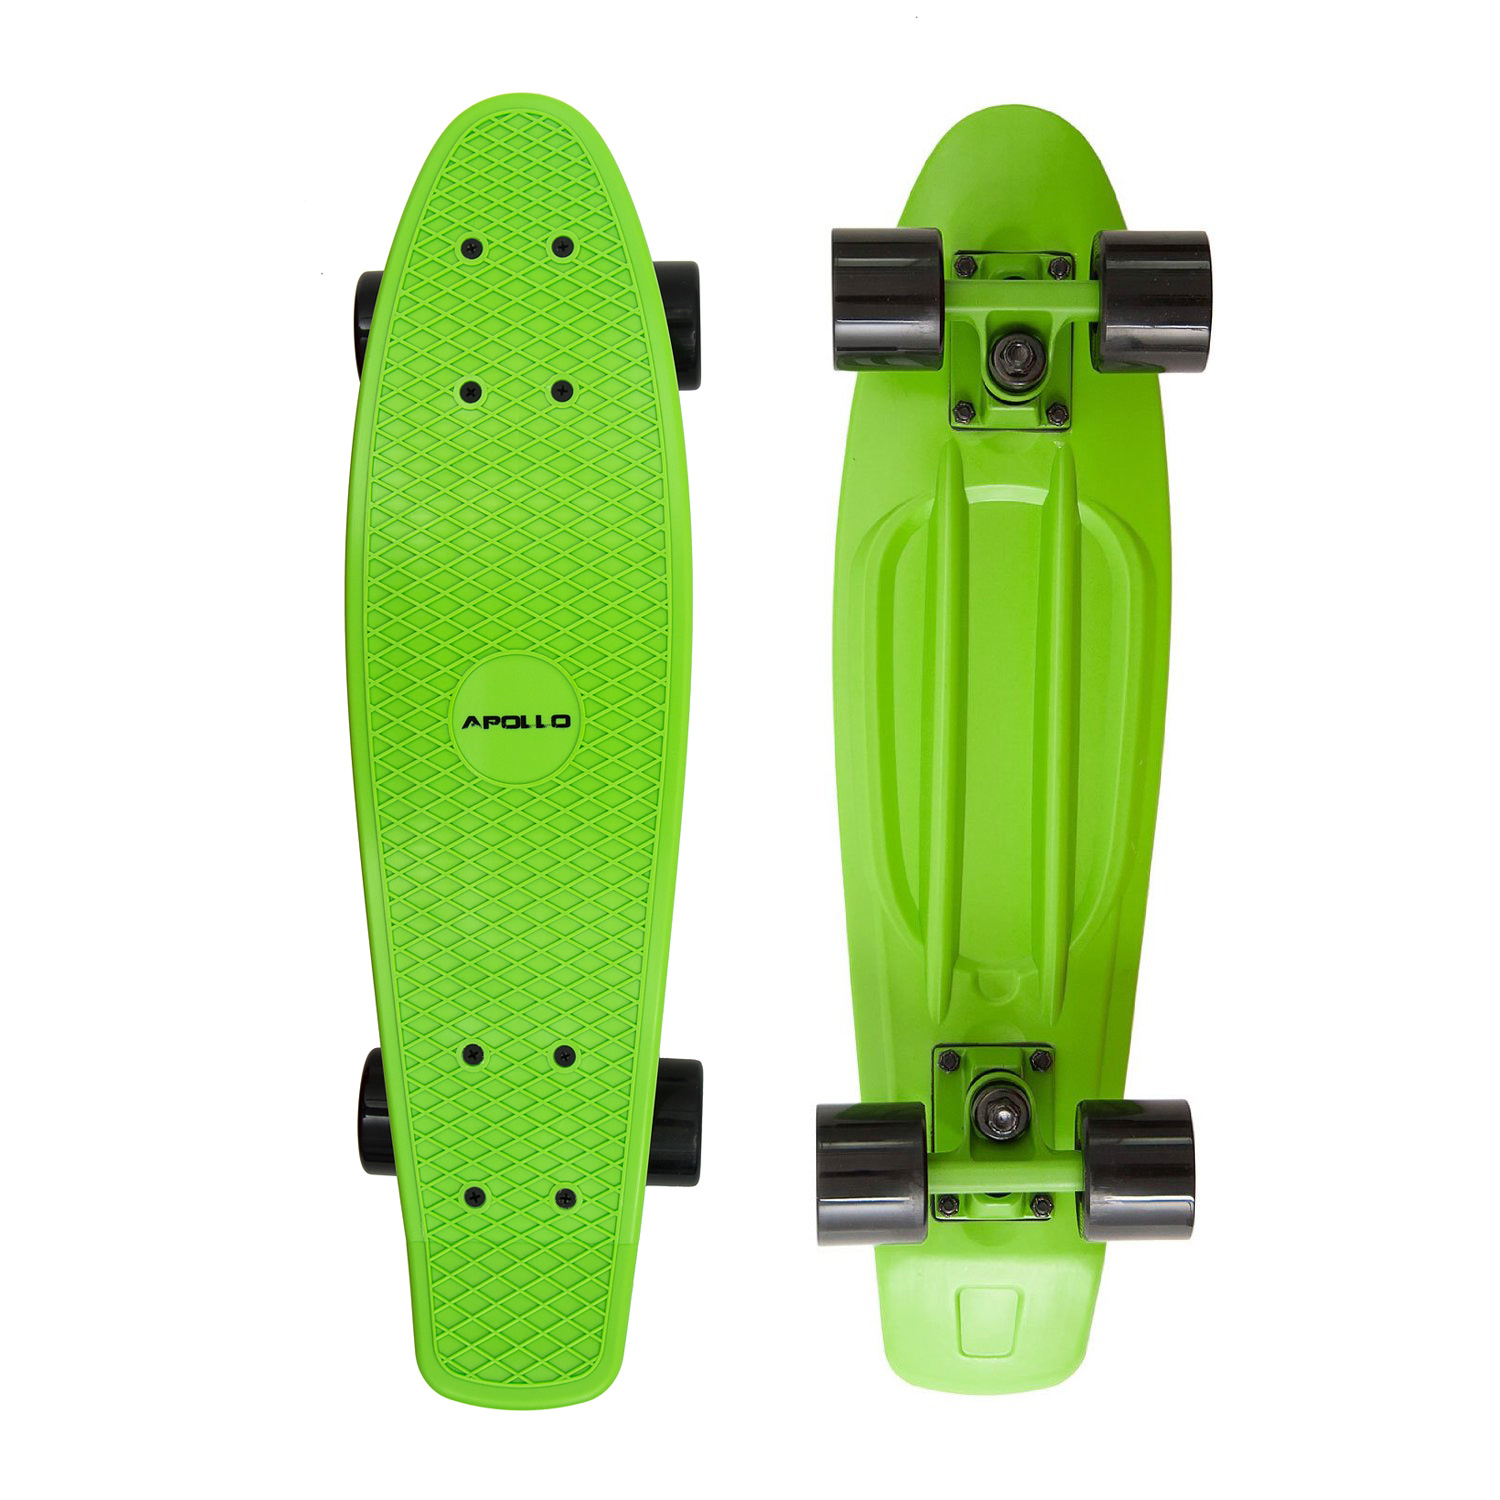 Apollo Fancy Board vintage Cruiser 22,5'' (57,15cm) Farbe: green/black